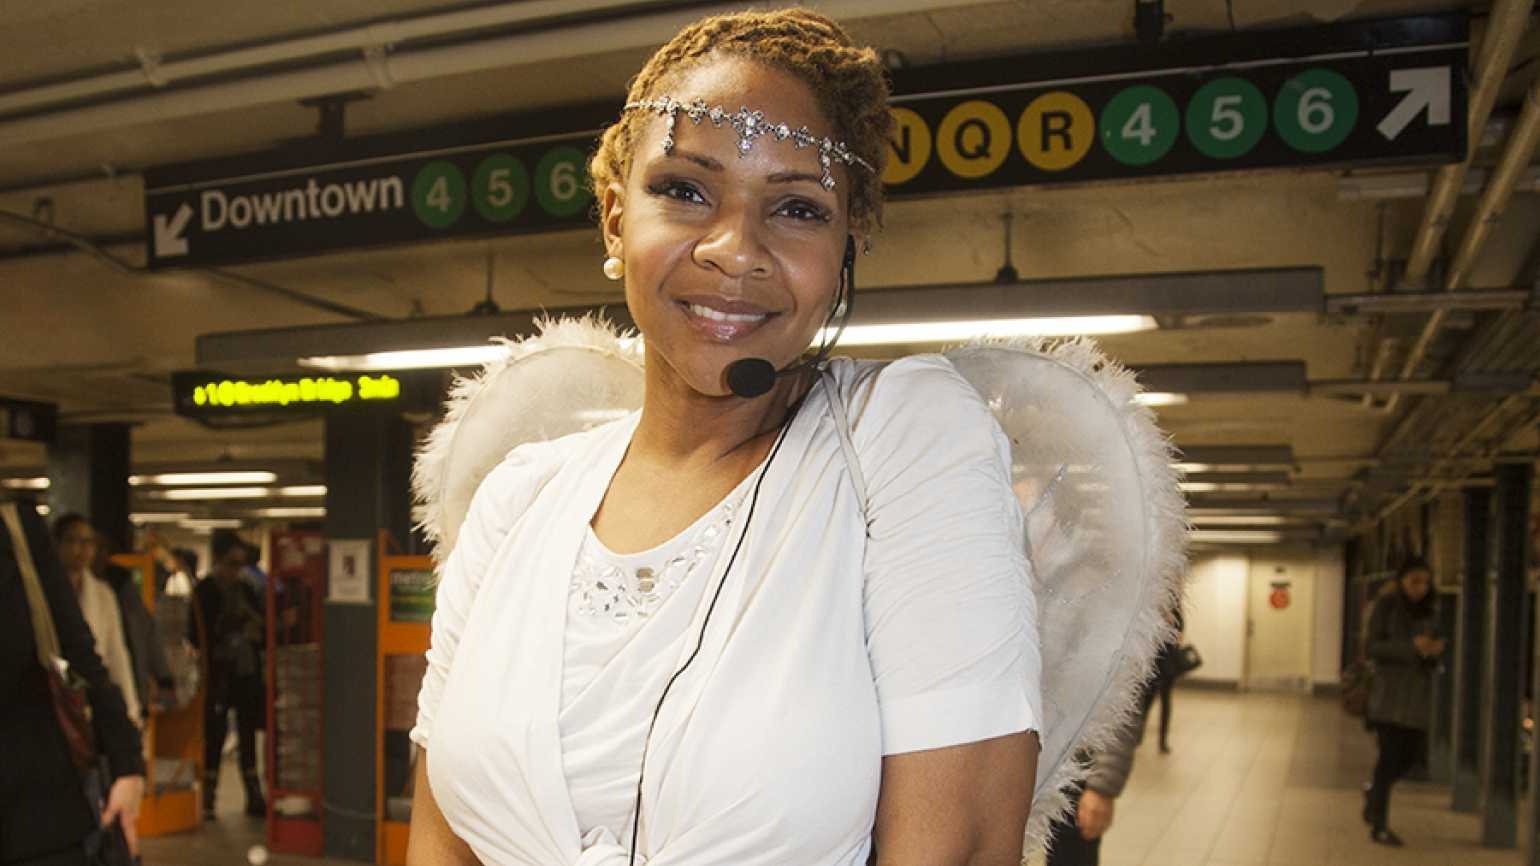 Guideposts: Martina Bruno, angel of the NYC subway